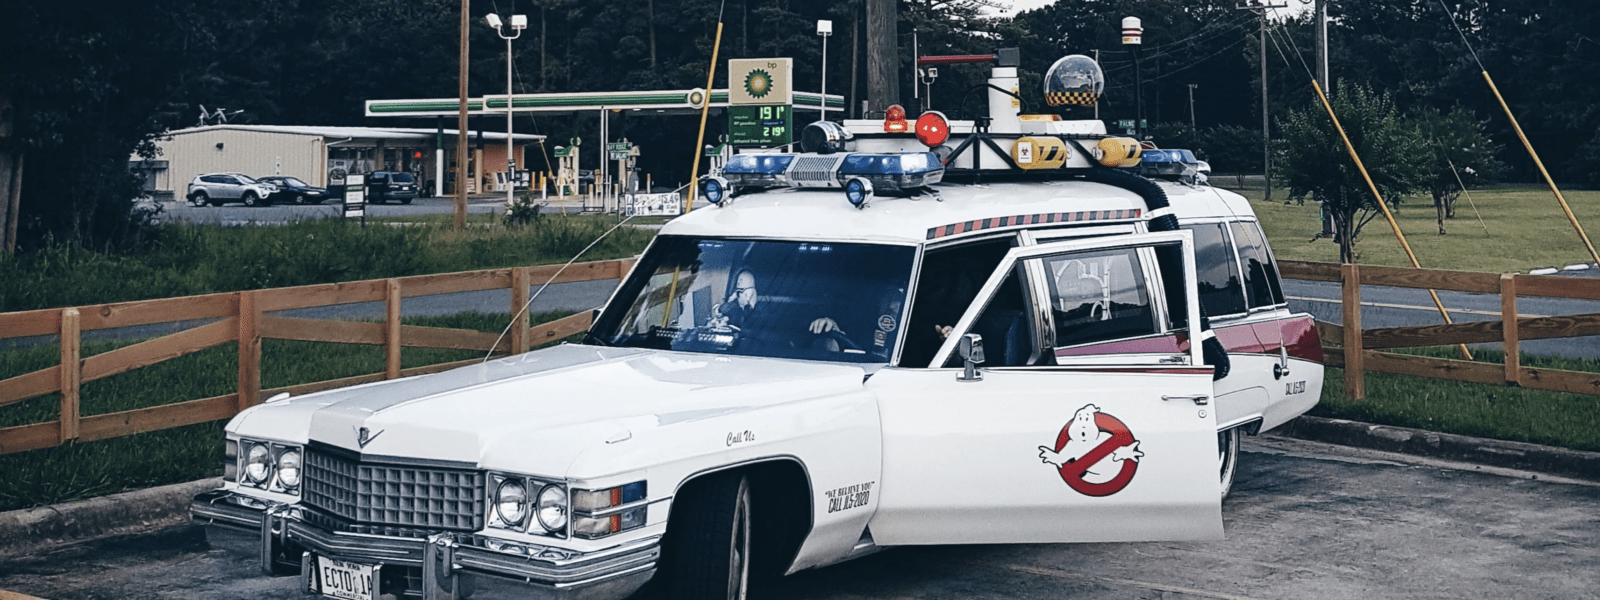 Original Ghostbusters Filming Locations in New York and Los Angeles